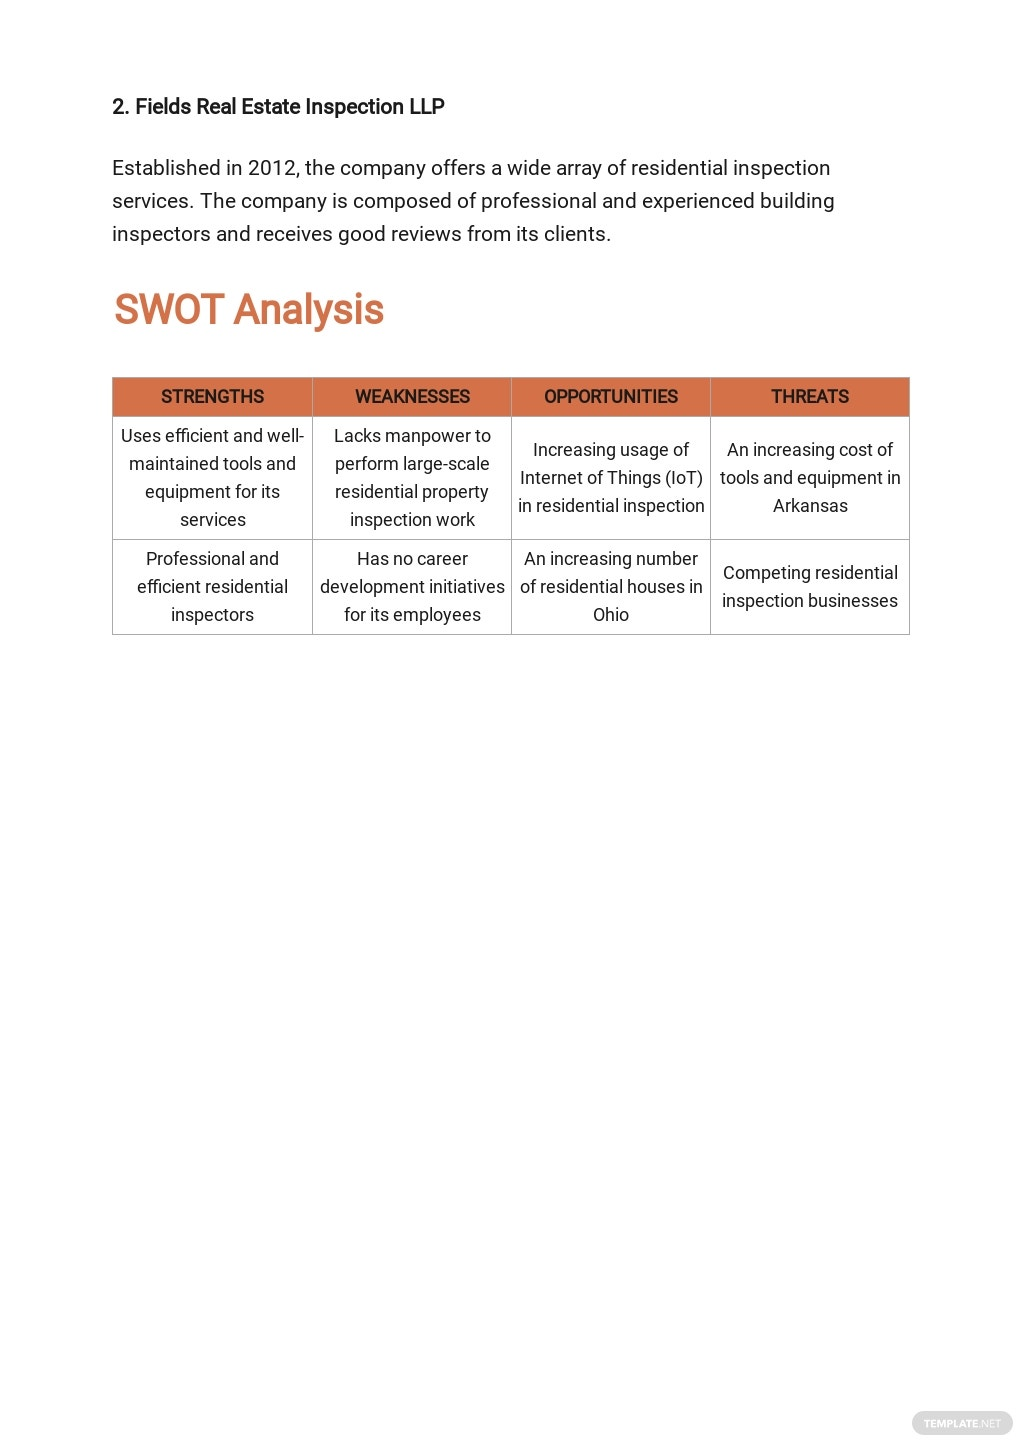 Business Property Inspection Business Plan Template 3.jpe